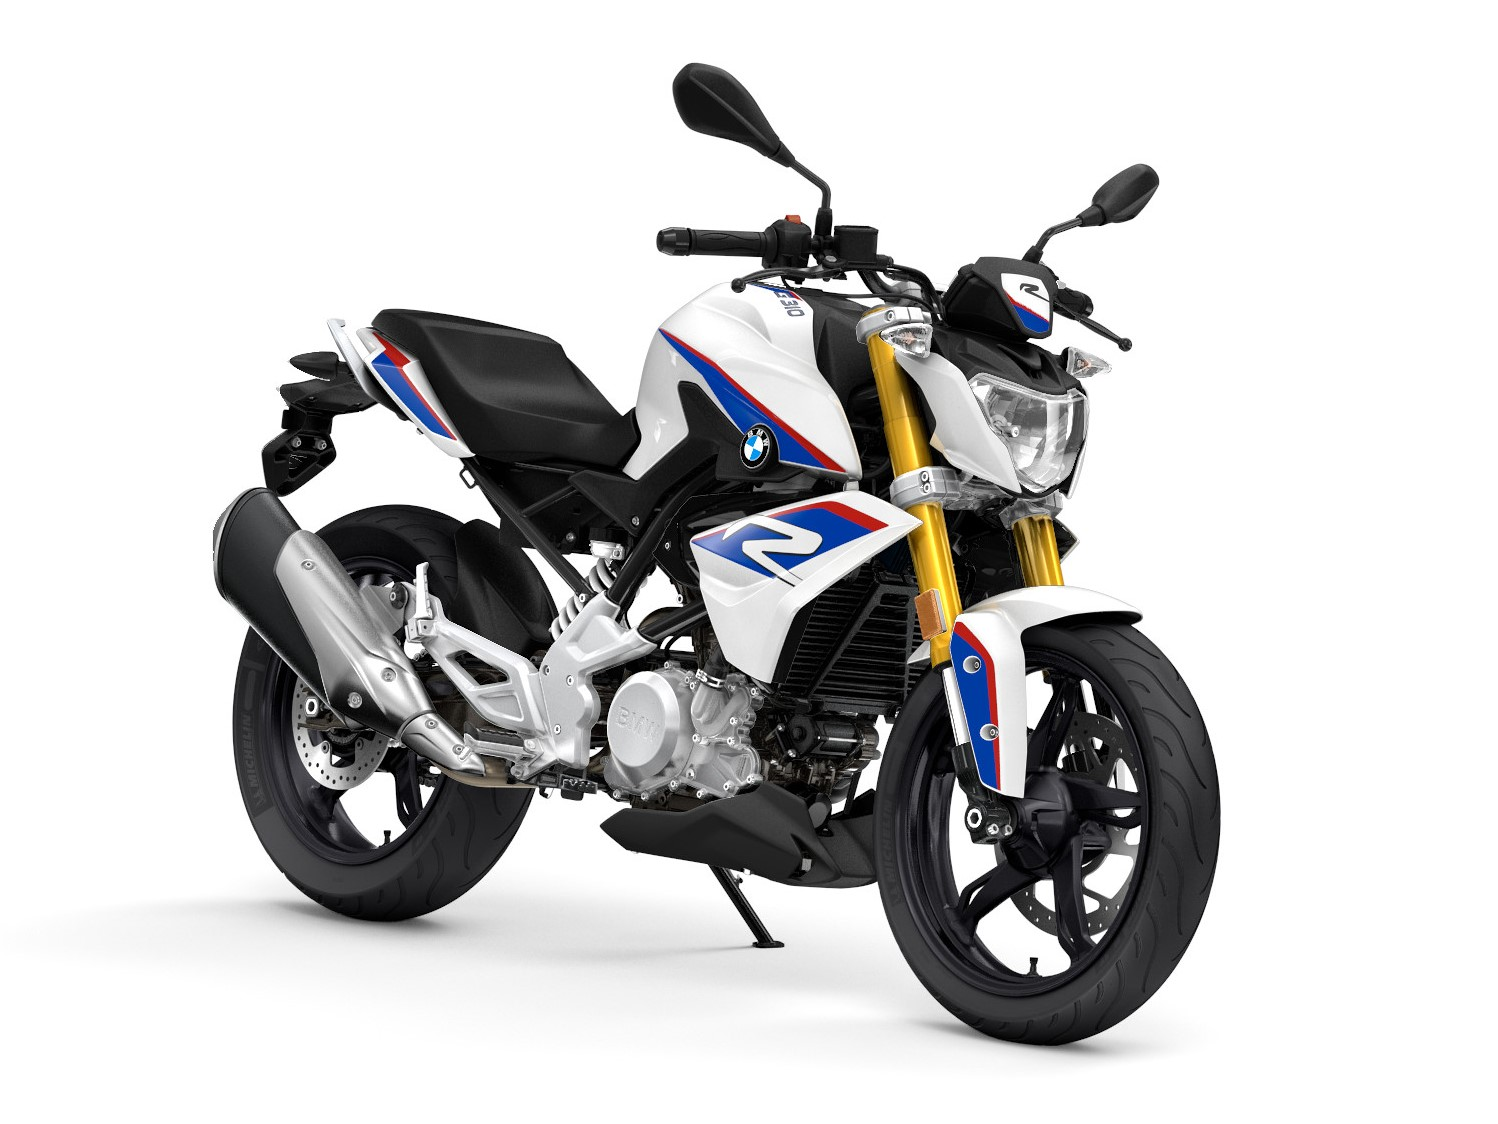 the international motorcycle show is a great way to see the best